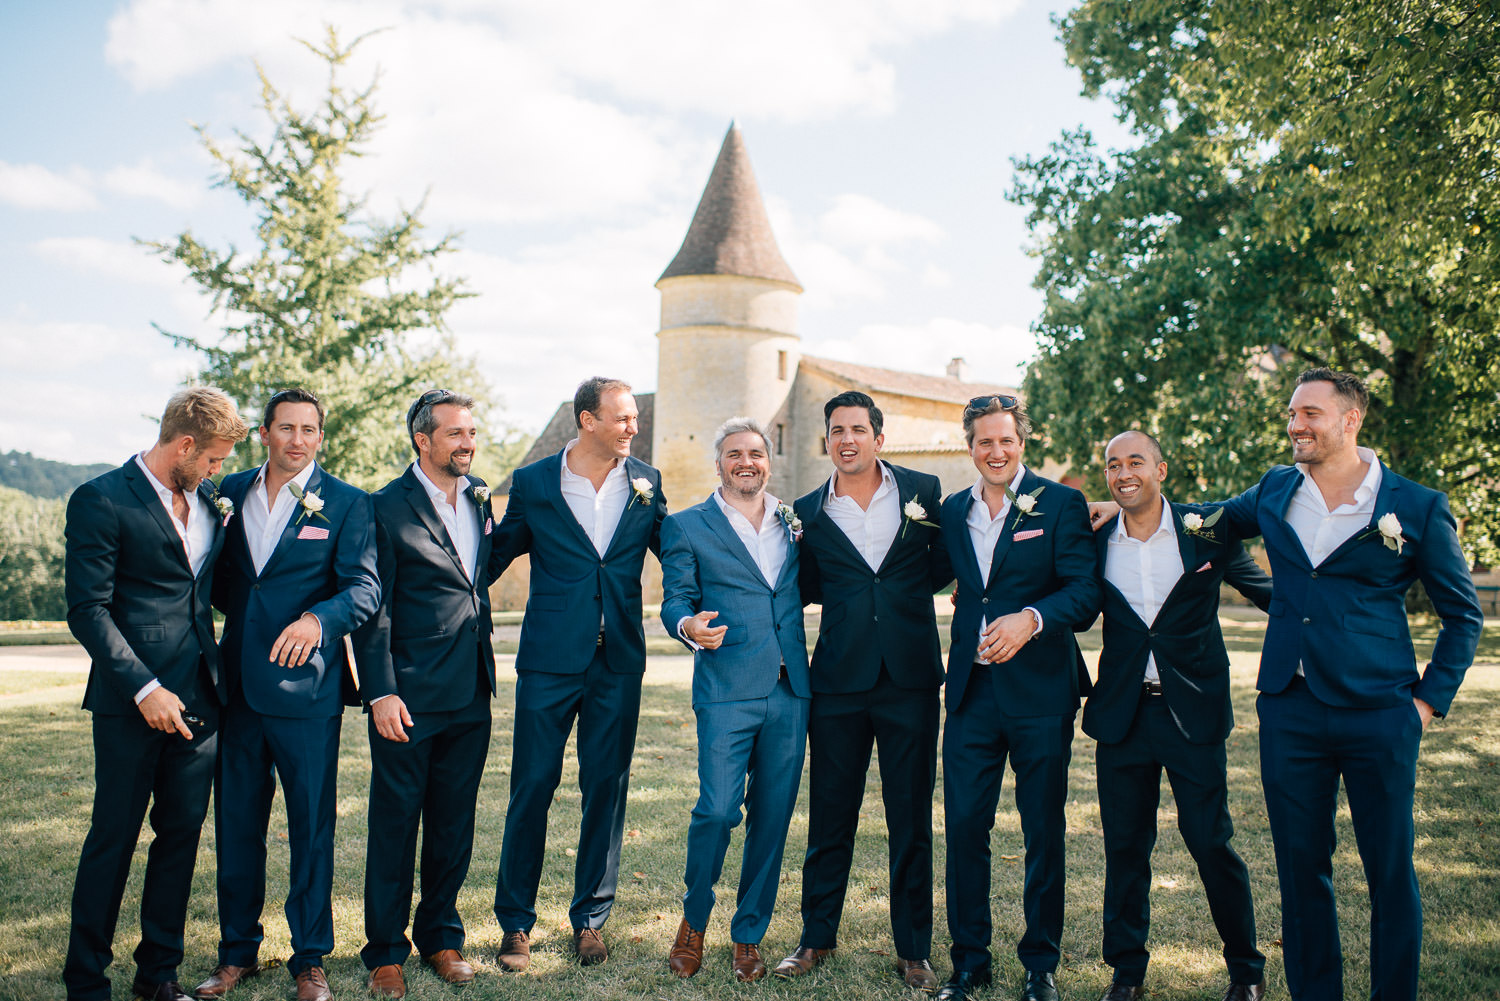 Groomsmen in hugo boss suits in chateau de la bourlie wedding by french destination wedding photographer the shannons photography